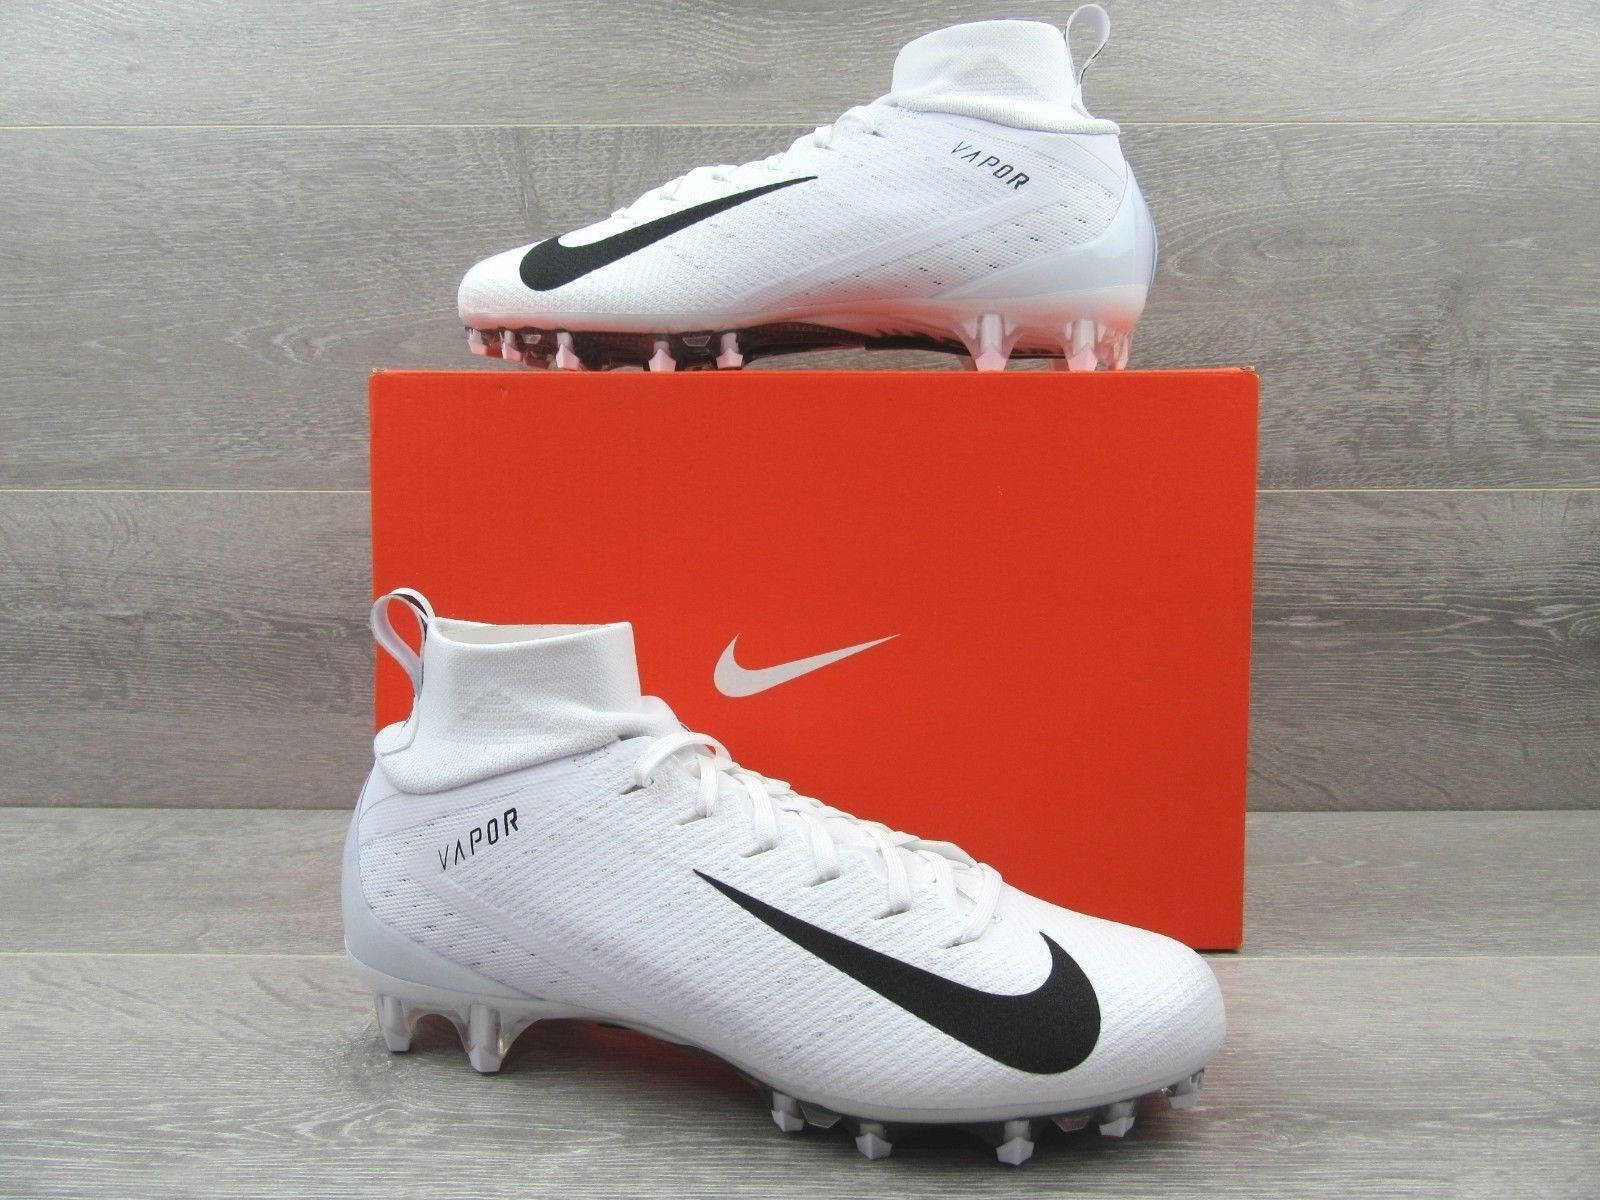 0ba6f77a67c7 57. 57. Previous. Nike Vapor Untouchable Pro 3 Football Cleats Size 11  White Black 917165 105 New